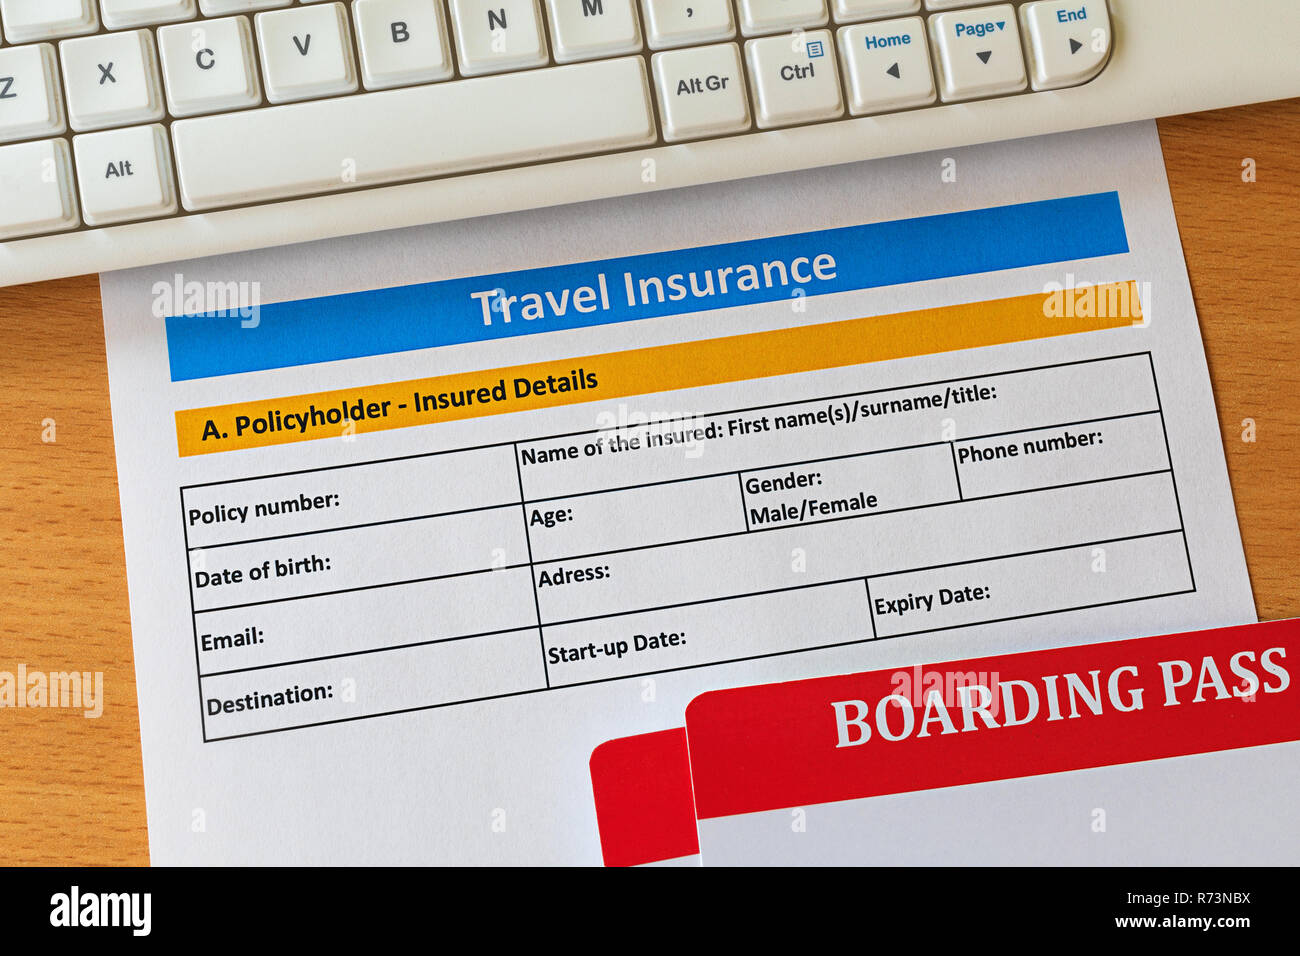 Travel insurance form on wooden table with boarding pass ticket and keyboard. Agencies sell airplane tickets or travel packages and allow consumers to - Stock Image